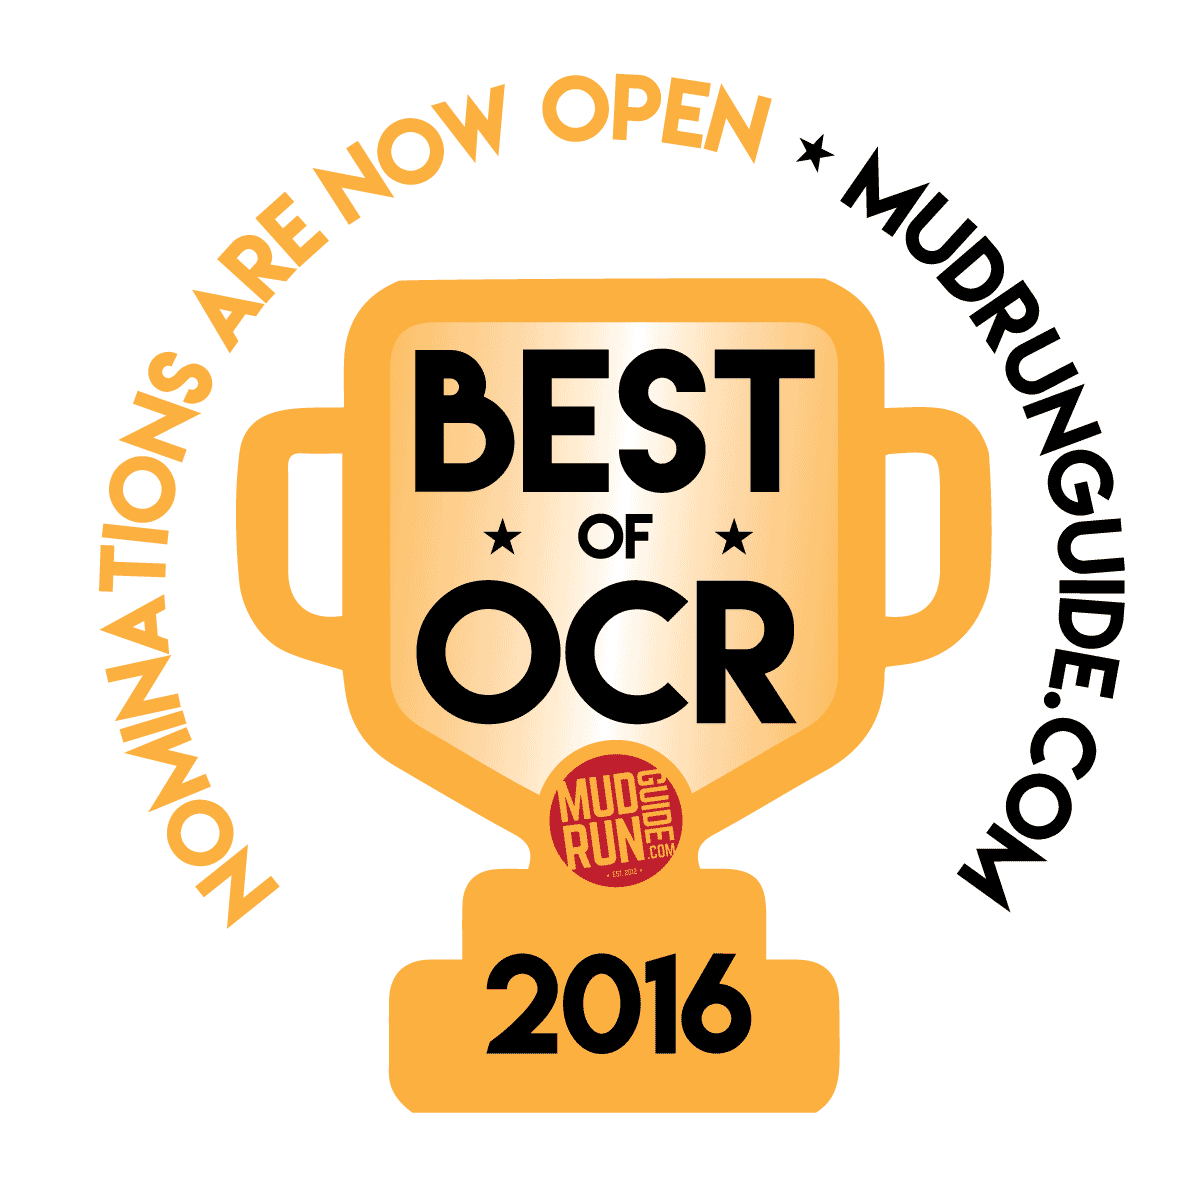 Best of OCR Nominations